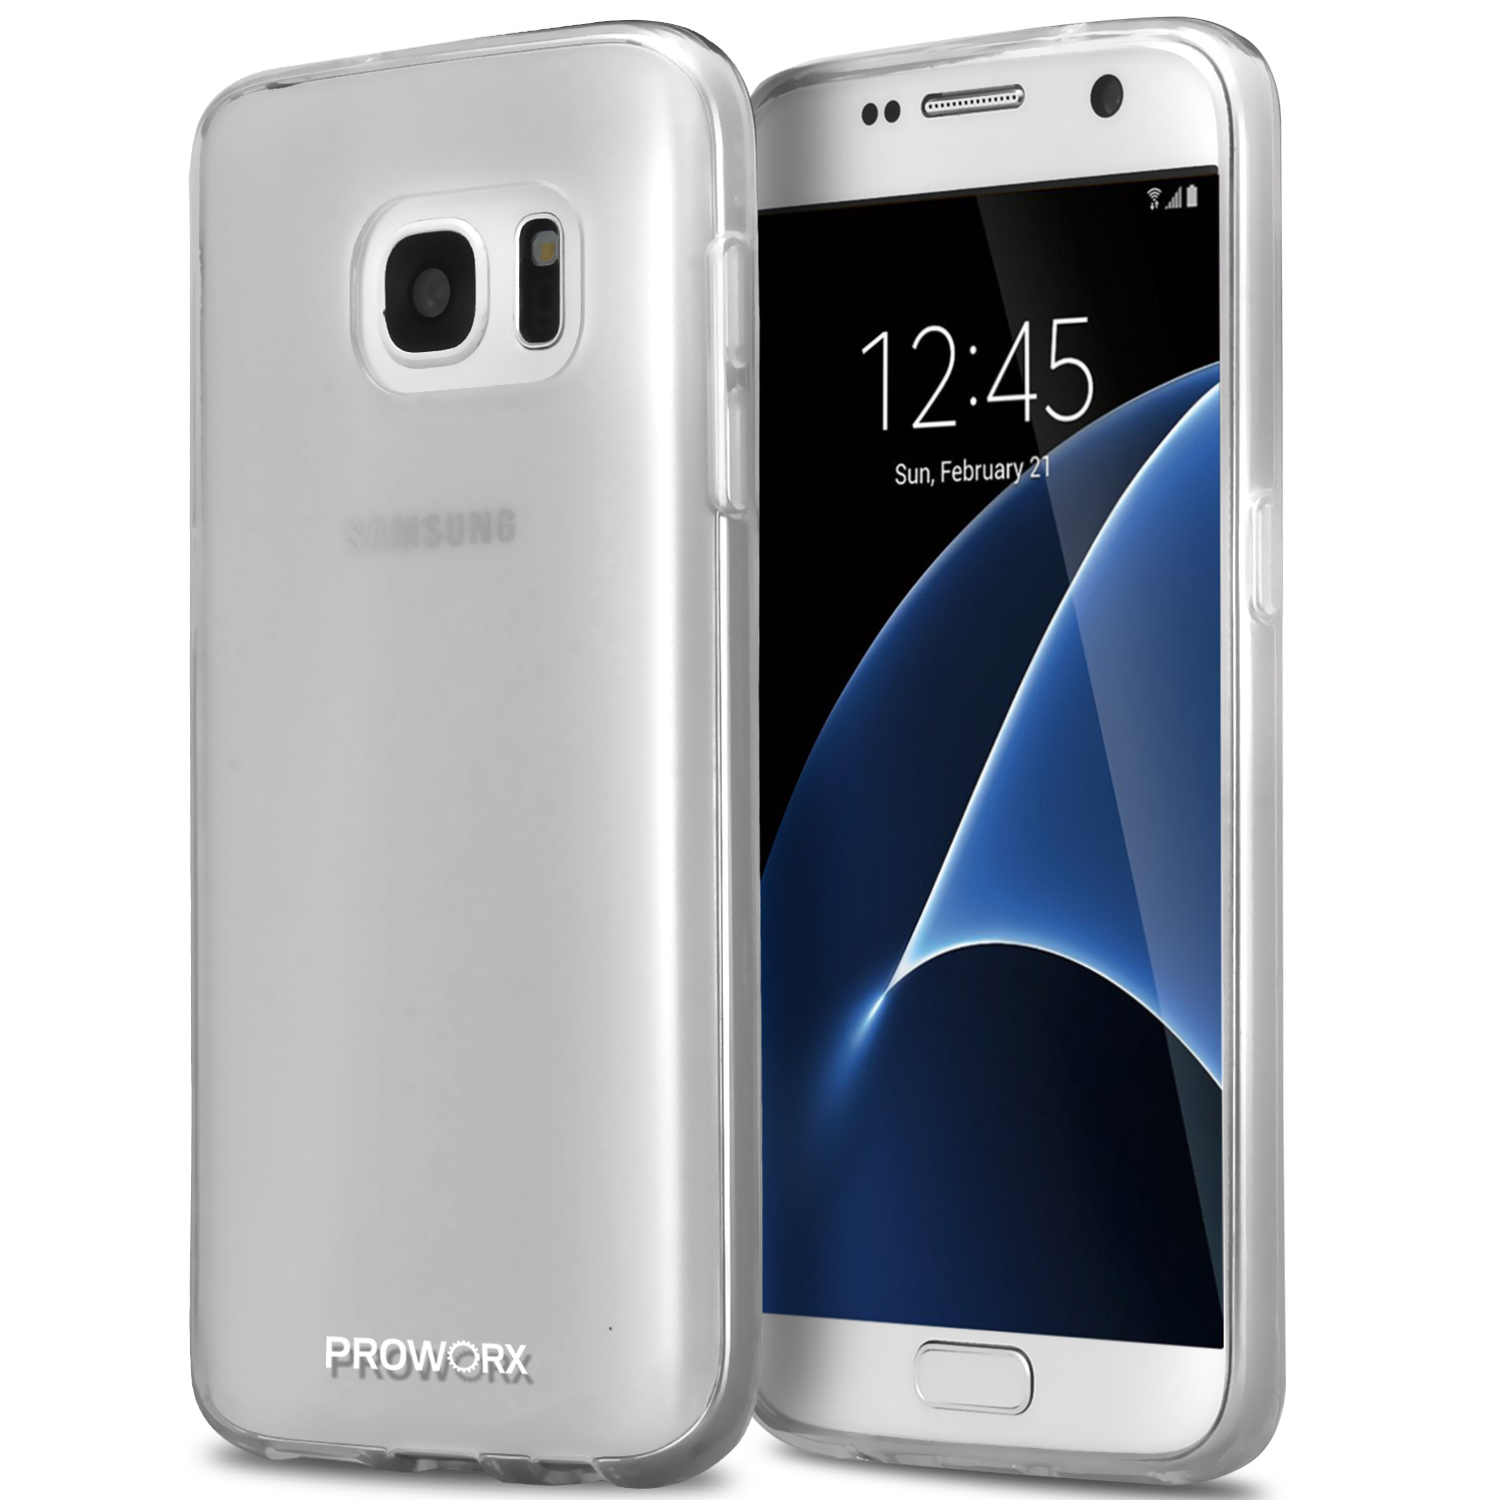 Samsung Galaxy S7 Clear ProWorx Ultra Slim Thin Scratch Resistant TPU Silicone Case Cover